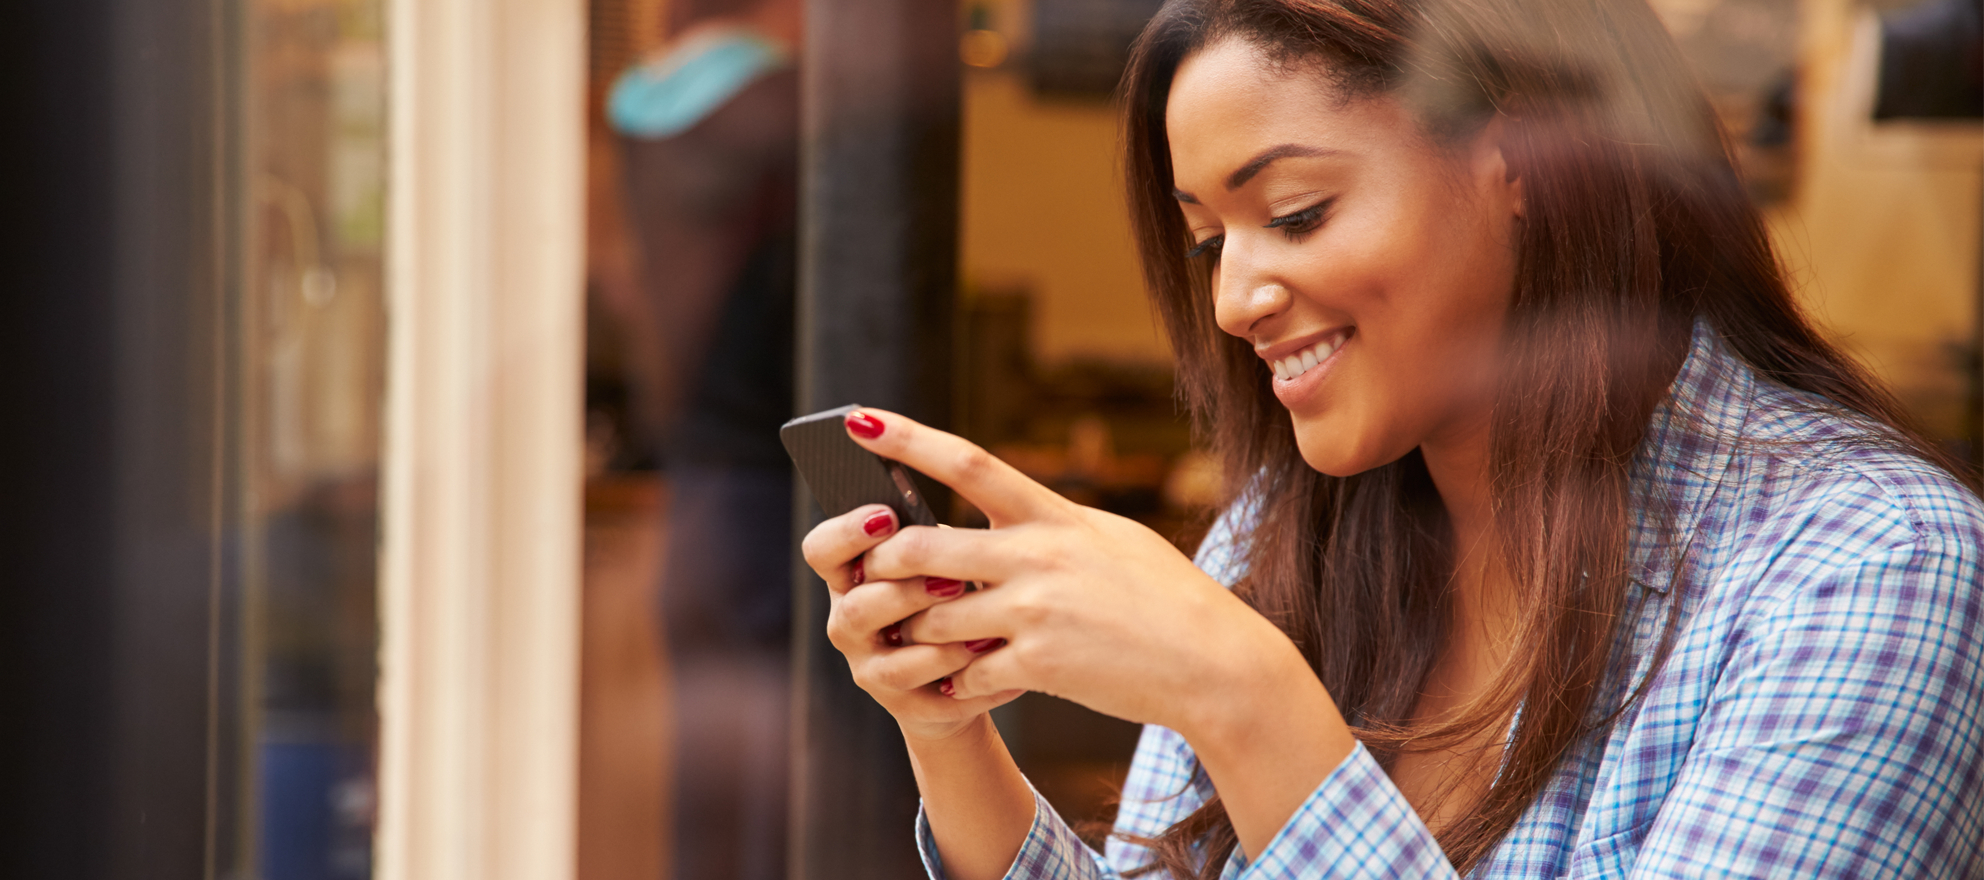 How mobile technology has changed real estate